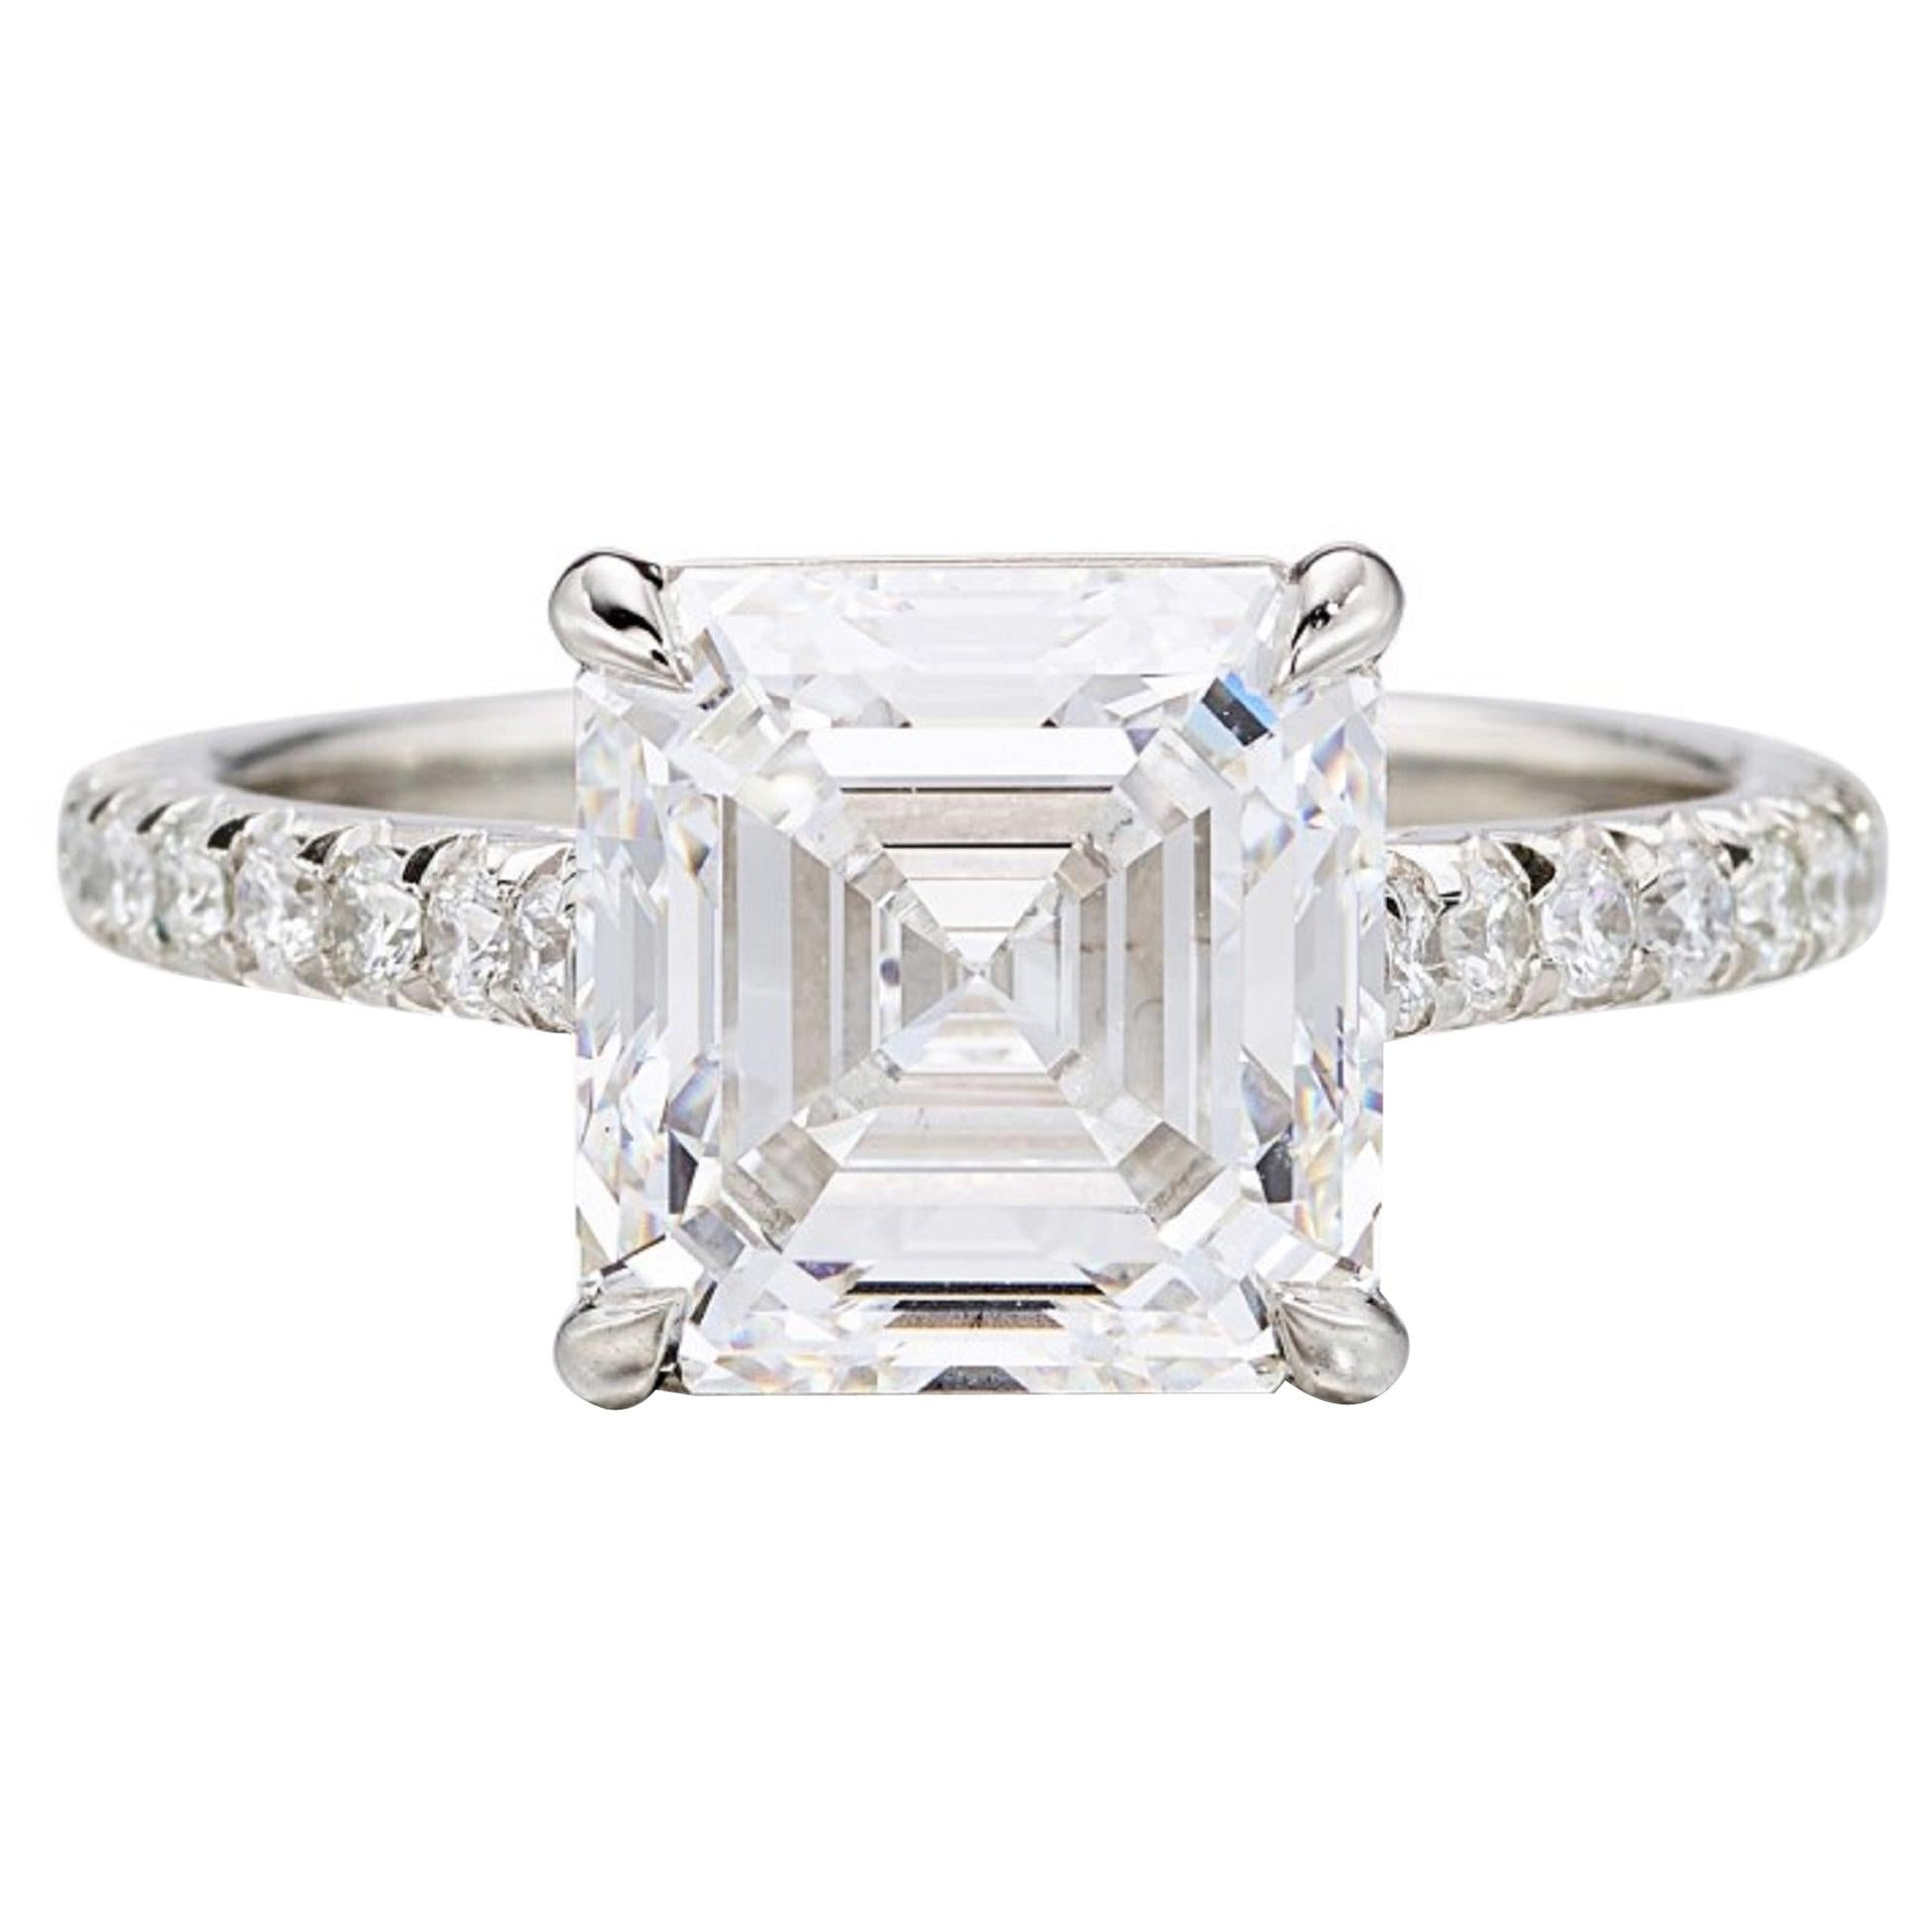 I Flawless GIA Certified 2 Carat Square Emerald Cut Diamond Pave Ring